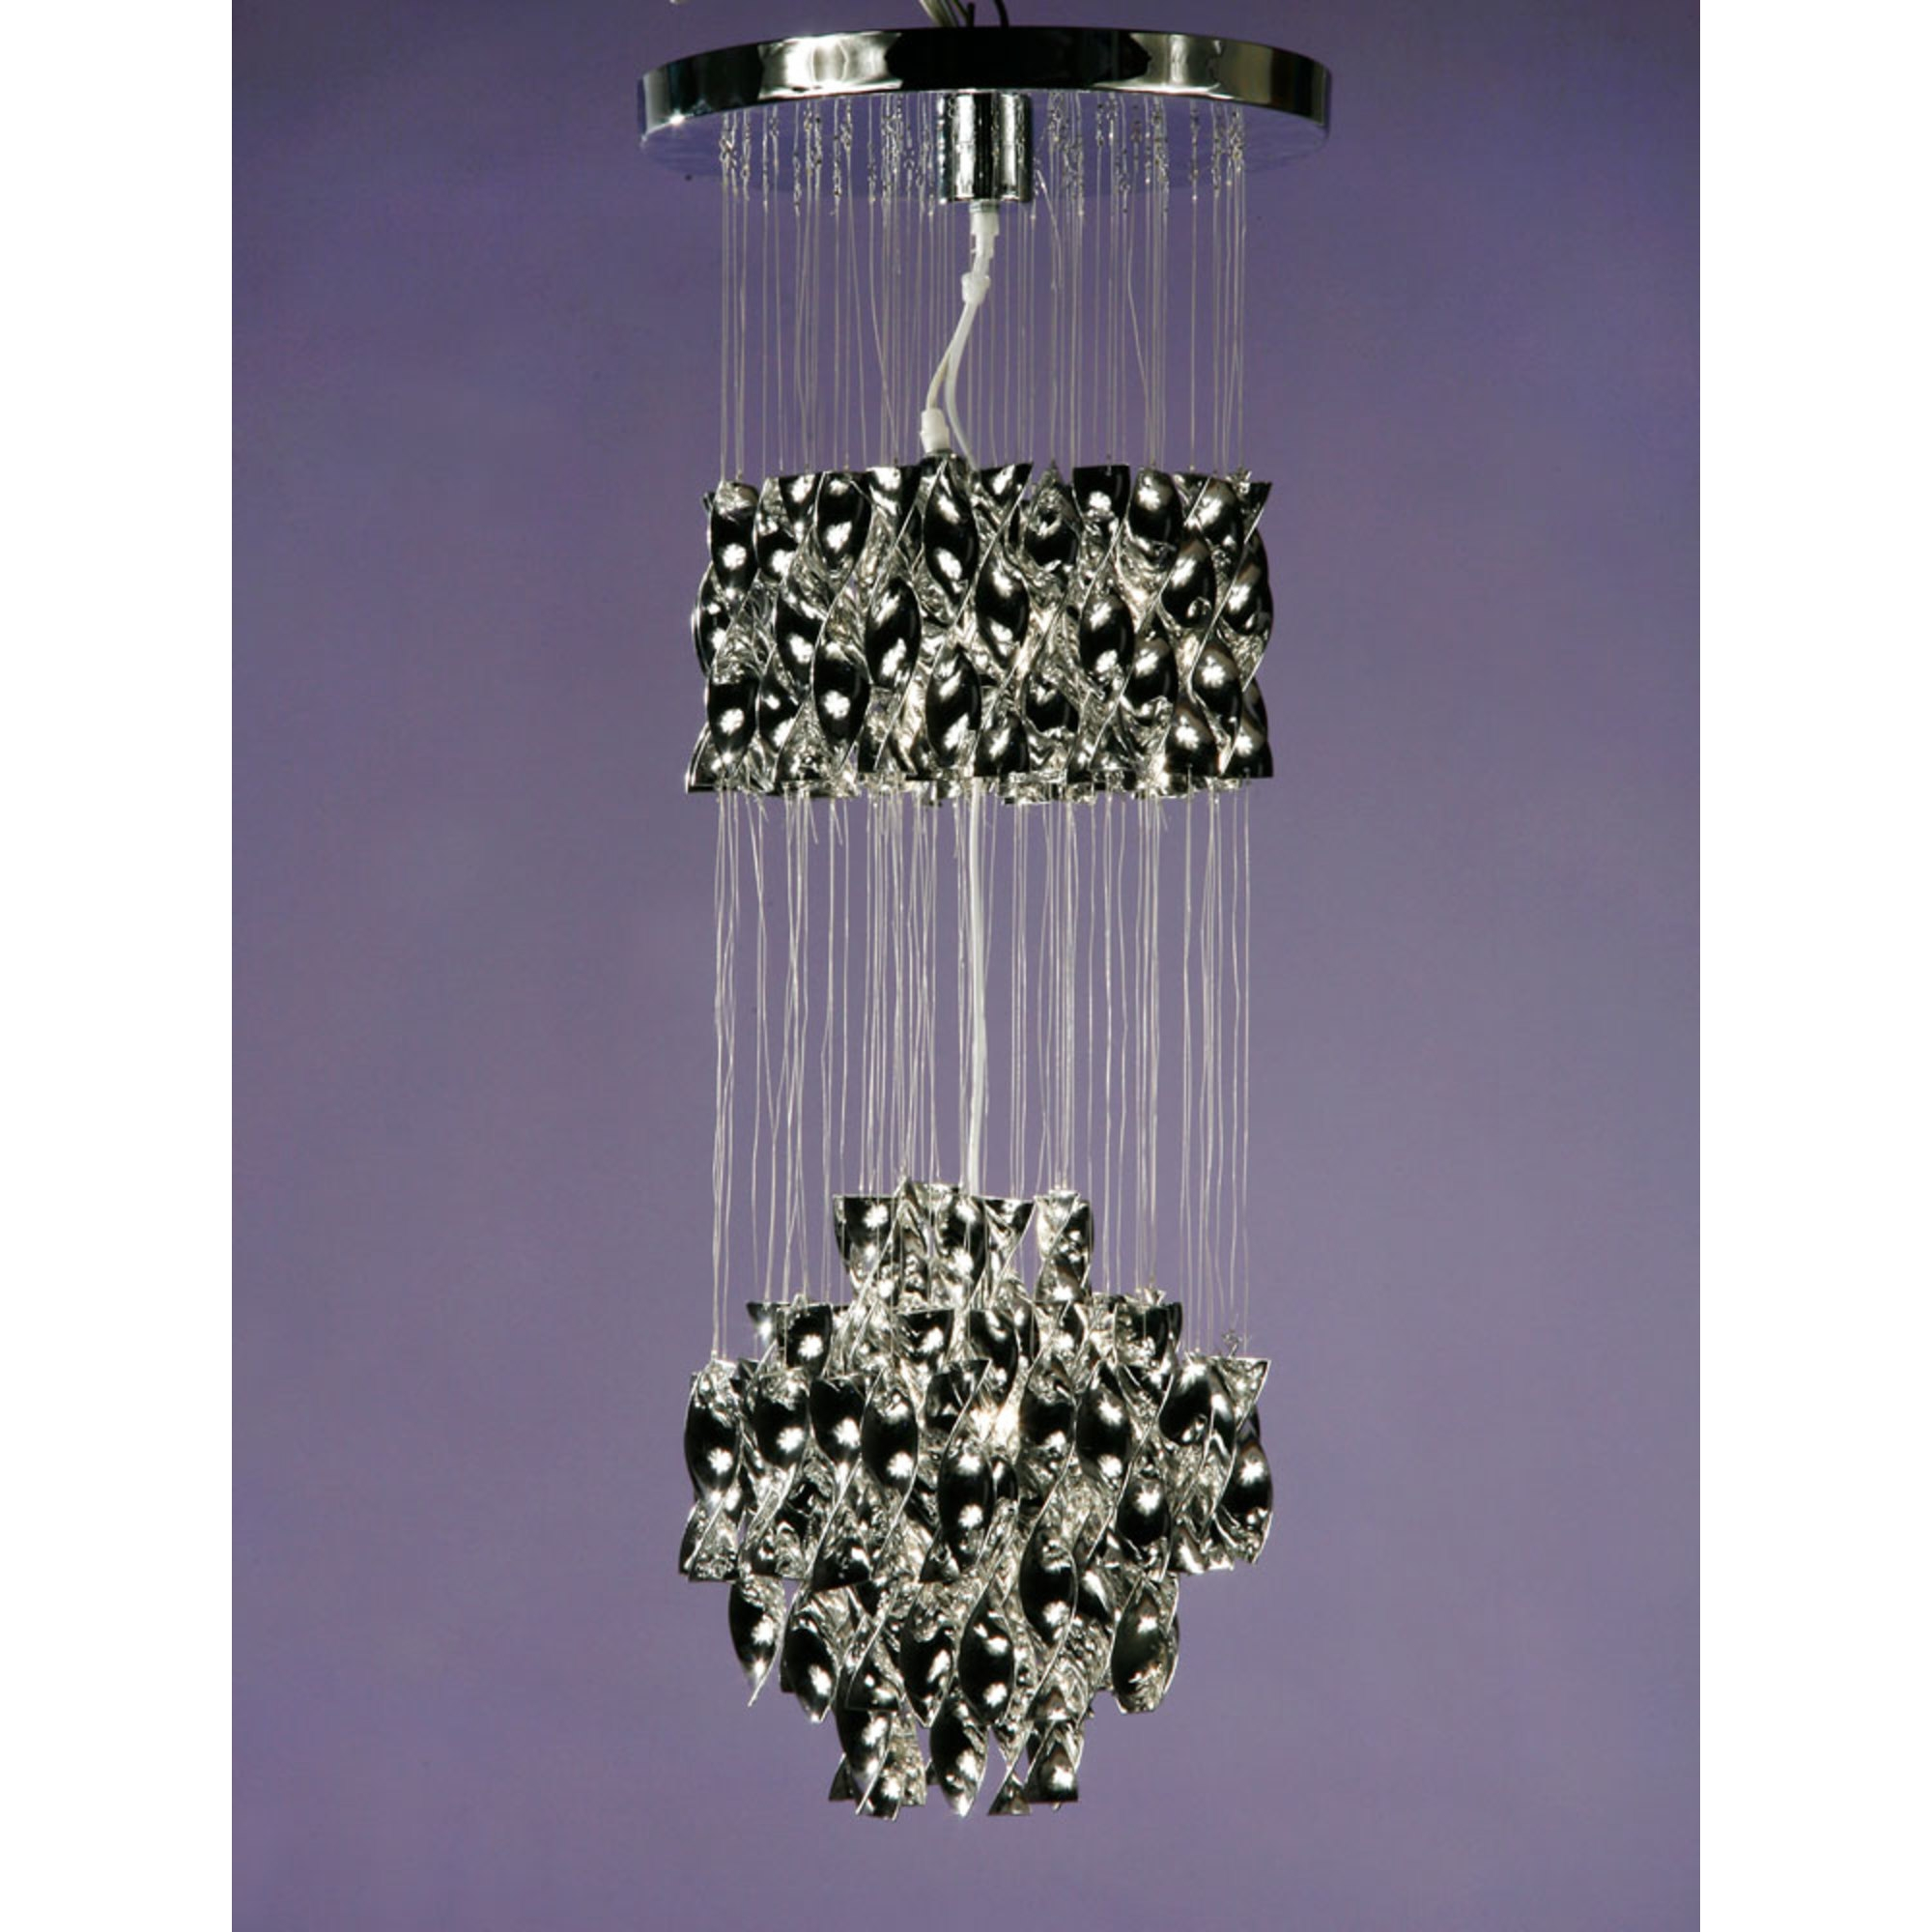 Ribbon Pendant Ceiling Light - Chrome